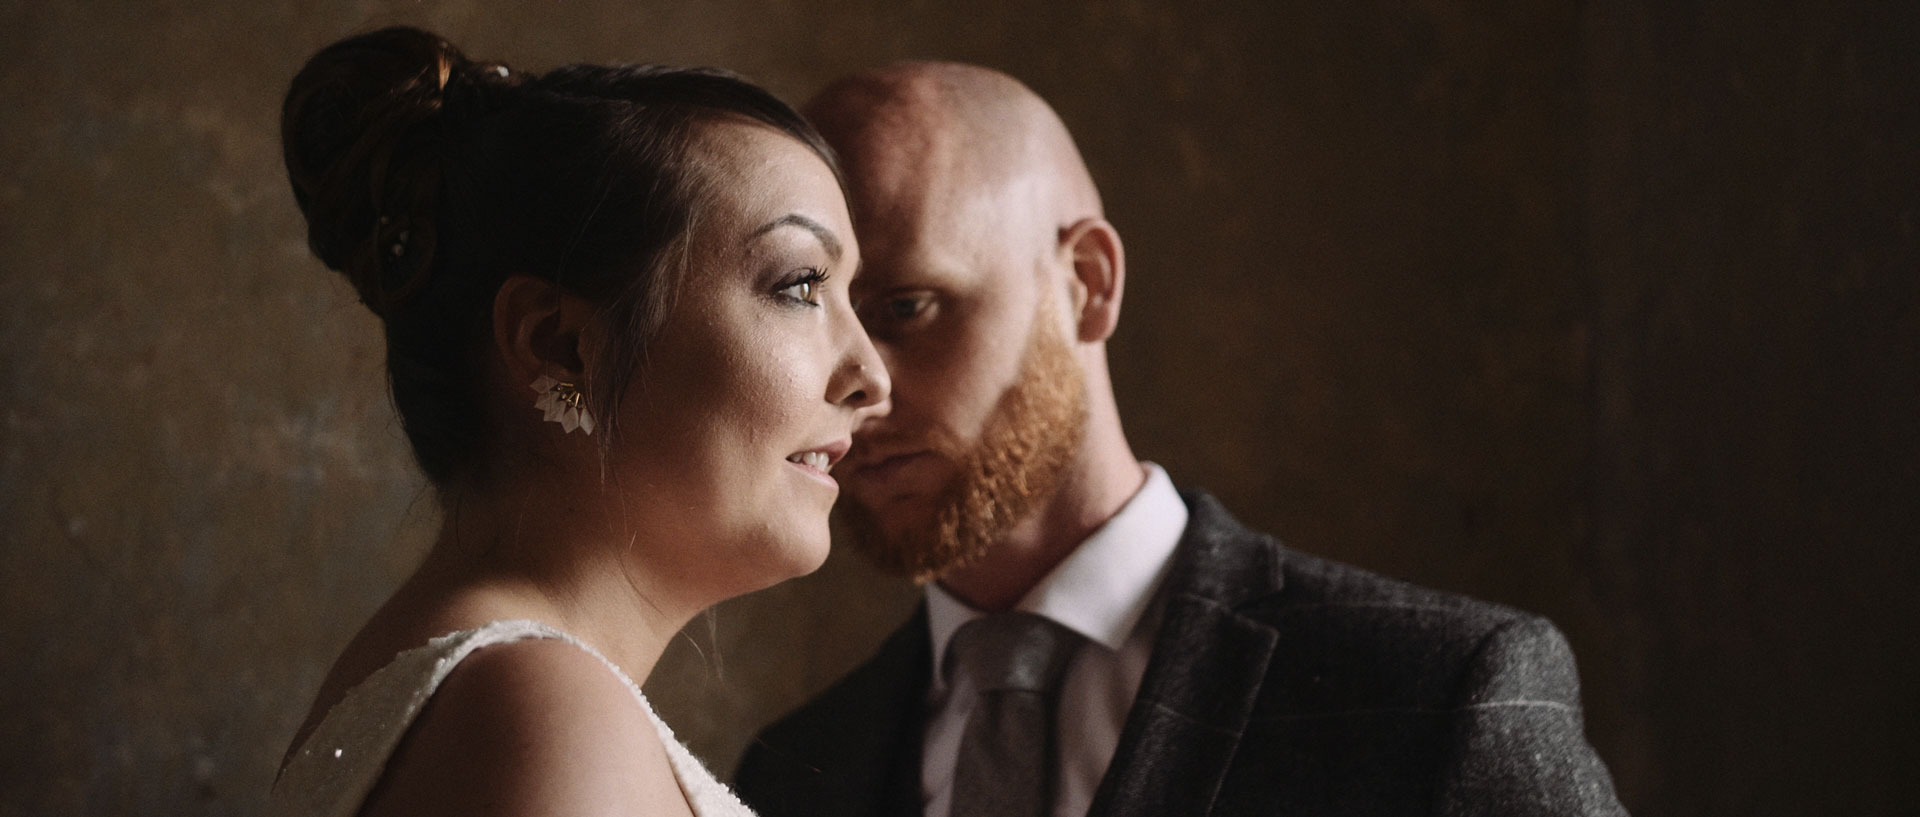 Cinematic wedding film 4K - A 4-6 minutes highlight film, an harmonious and poetic mix of imagery, musics and vocals, to tell your unique story and make you relive intensely, for the next 50 years, all the emotions of your wedding.This is the film you will watch the most, the one you will be the most proud and you will share easily with your friends and family. This is also the main film of your wedding and the one I love the most because I spend so much time on polishing every details.